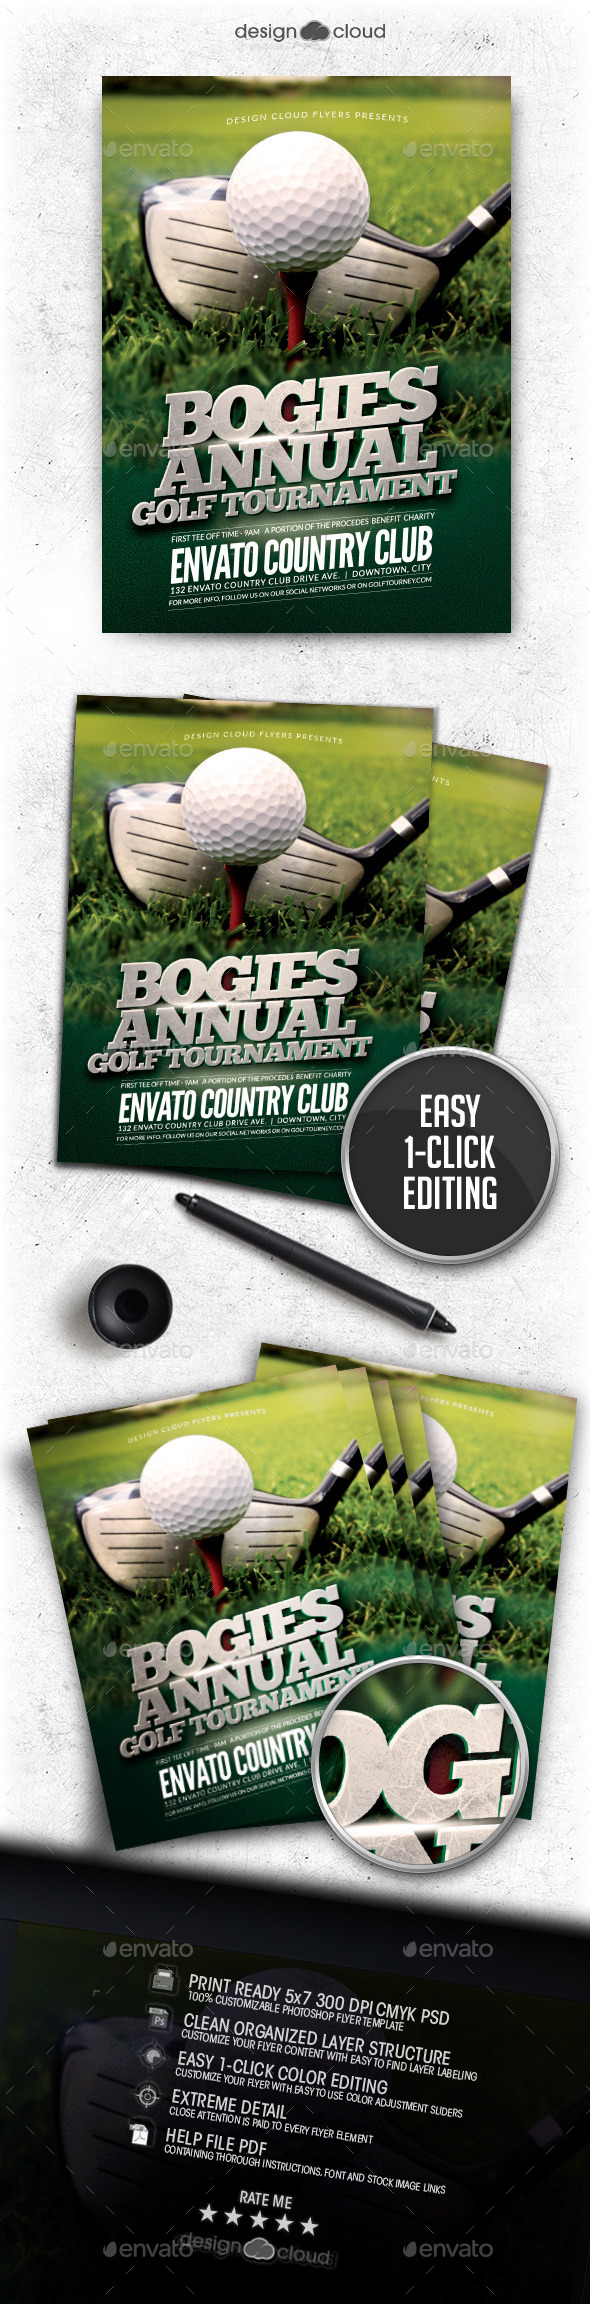 Golf Tournament Flyer Template By Design Cloud Graphicriver